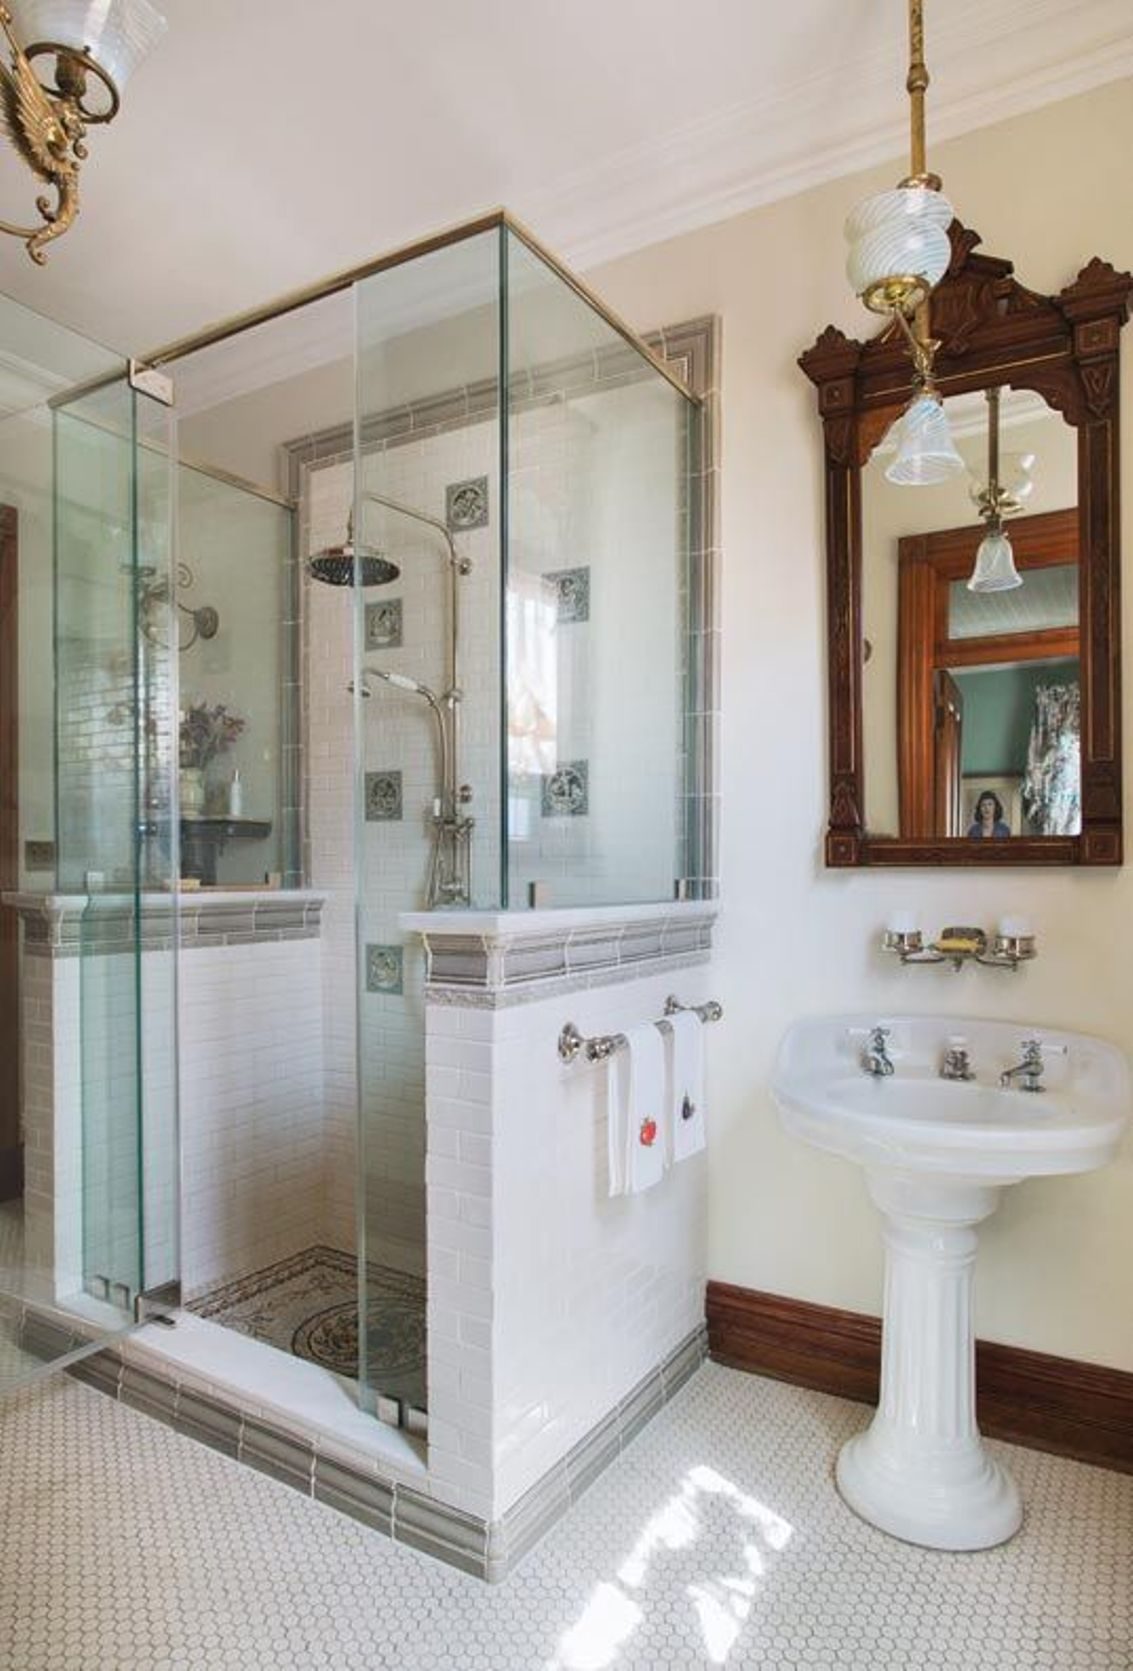 Wonderful Bathroom With Walk In Shower And Ornate Wooden Mirror Over  Pedestal Sink